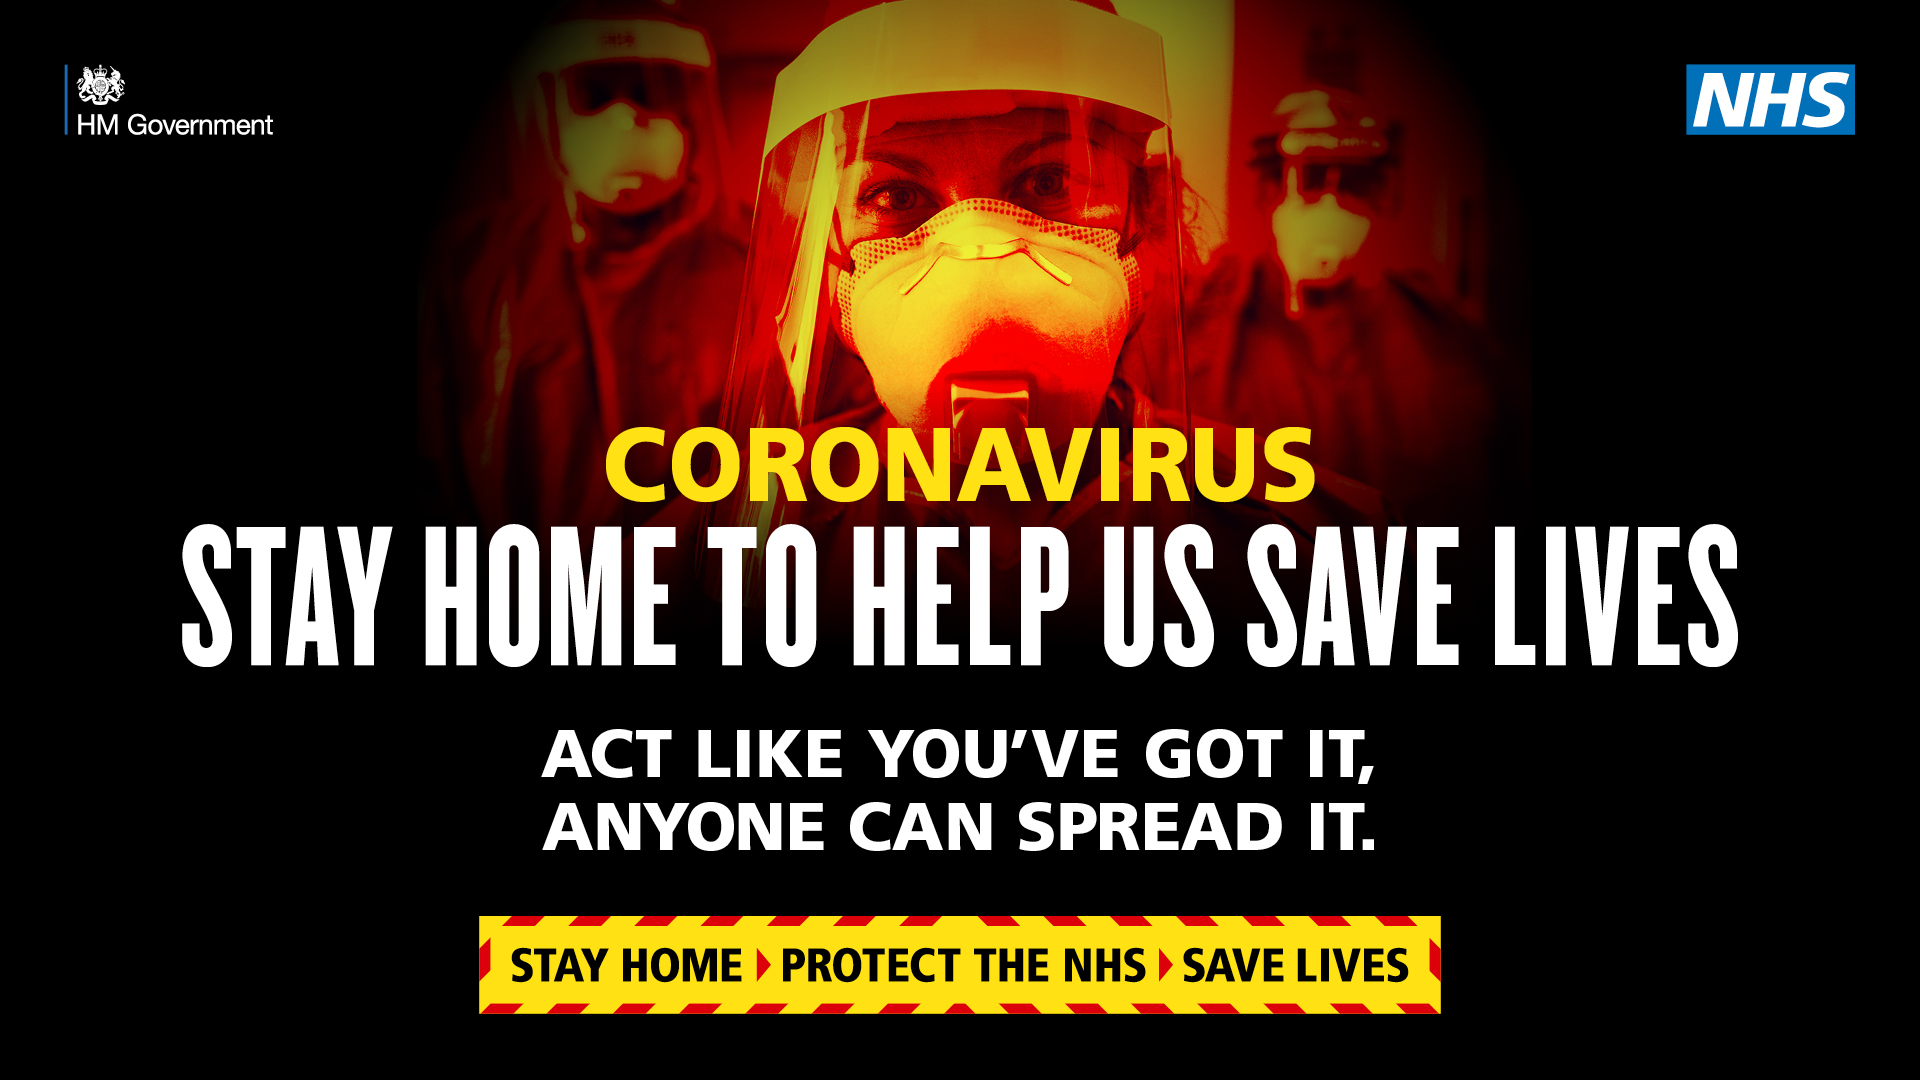 Coronavirus.  Stay home to help us save lives.  Act like you've got it, anyone can spread it.  Stay home, protect the NHS, save lives